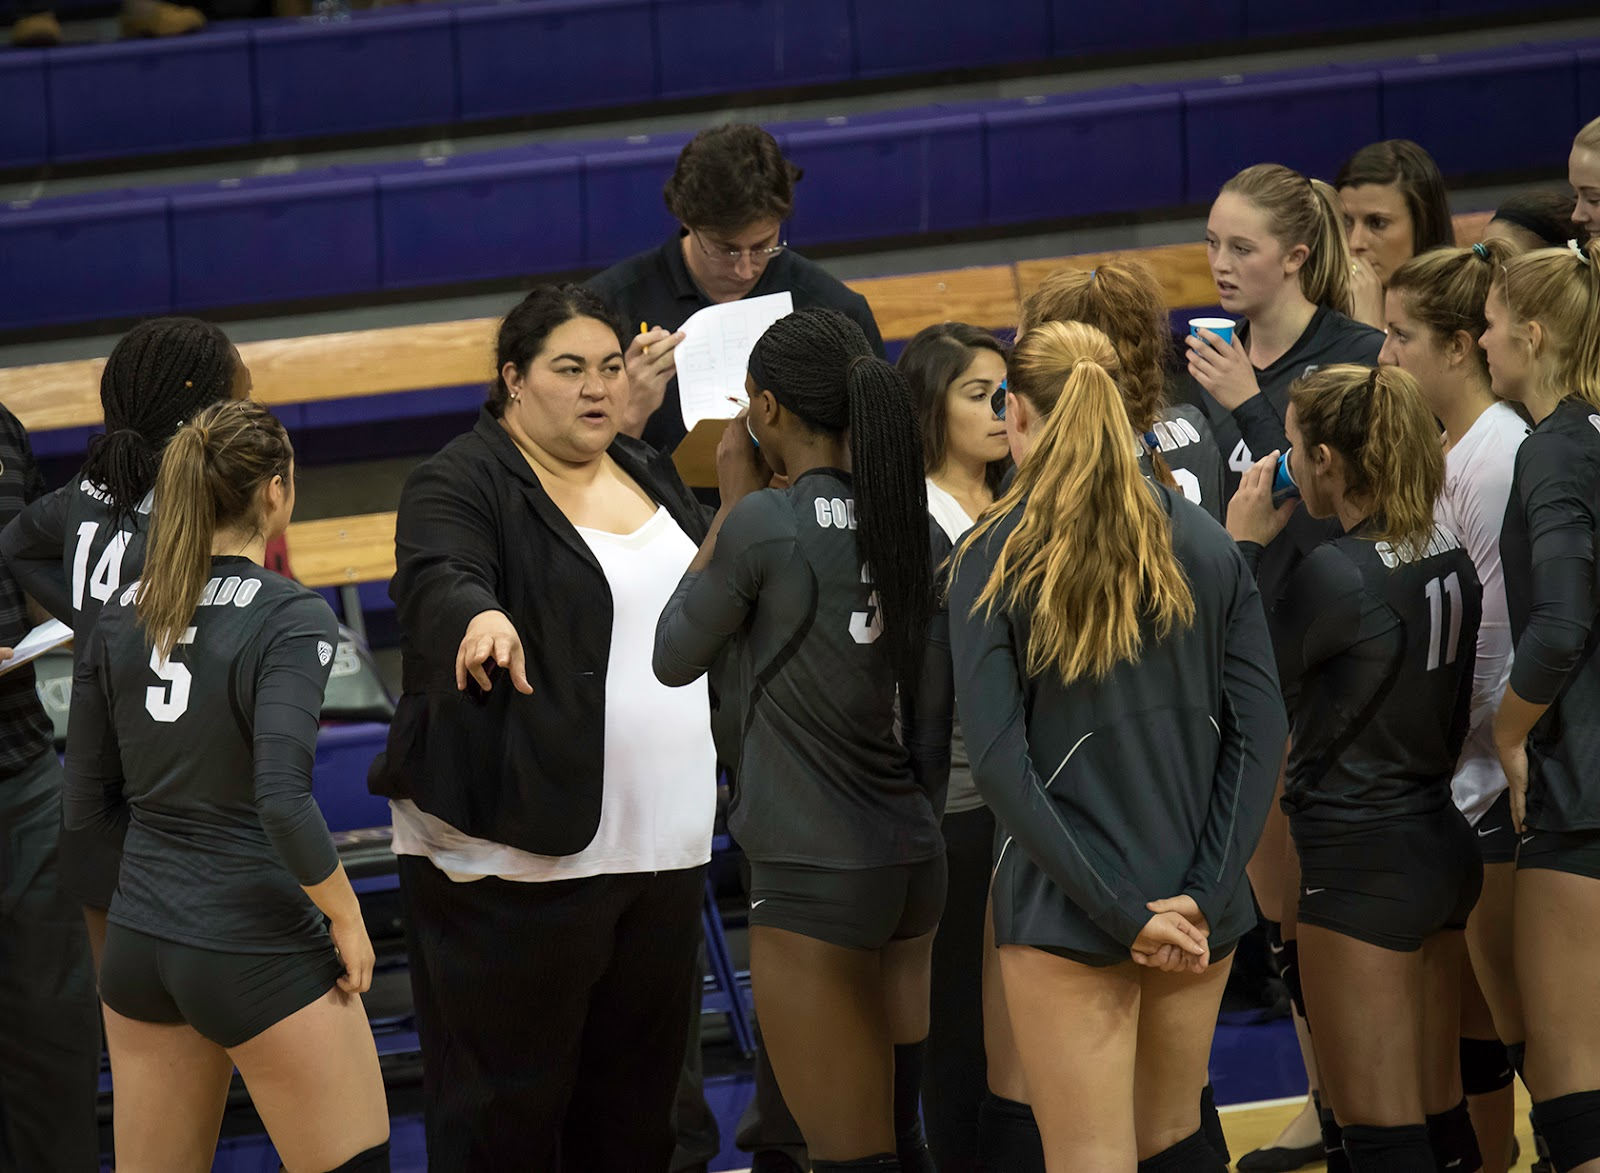 hot college volleyball players giving head